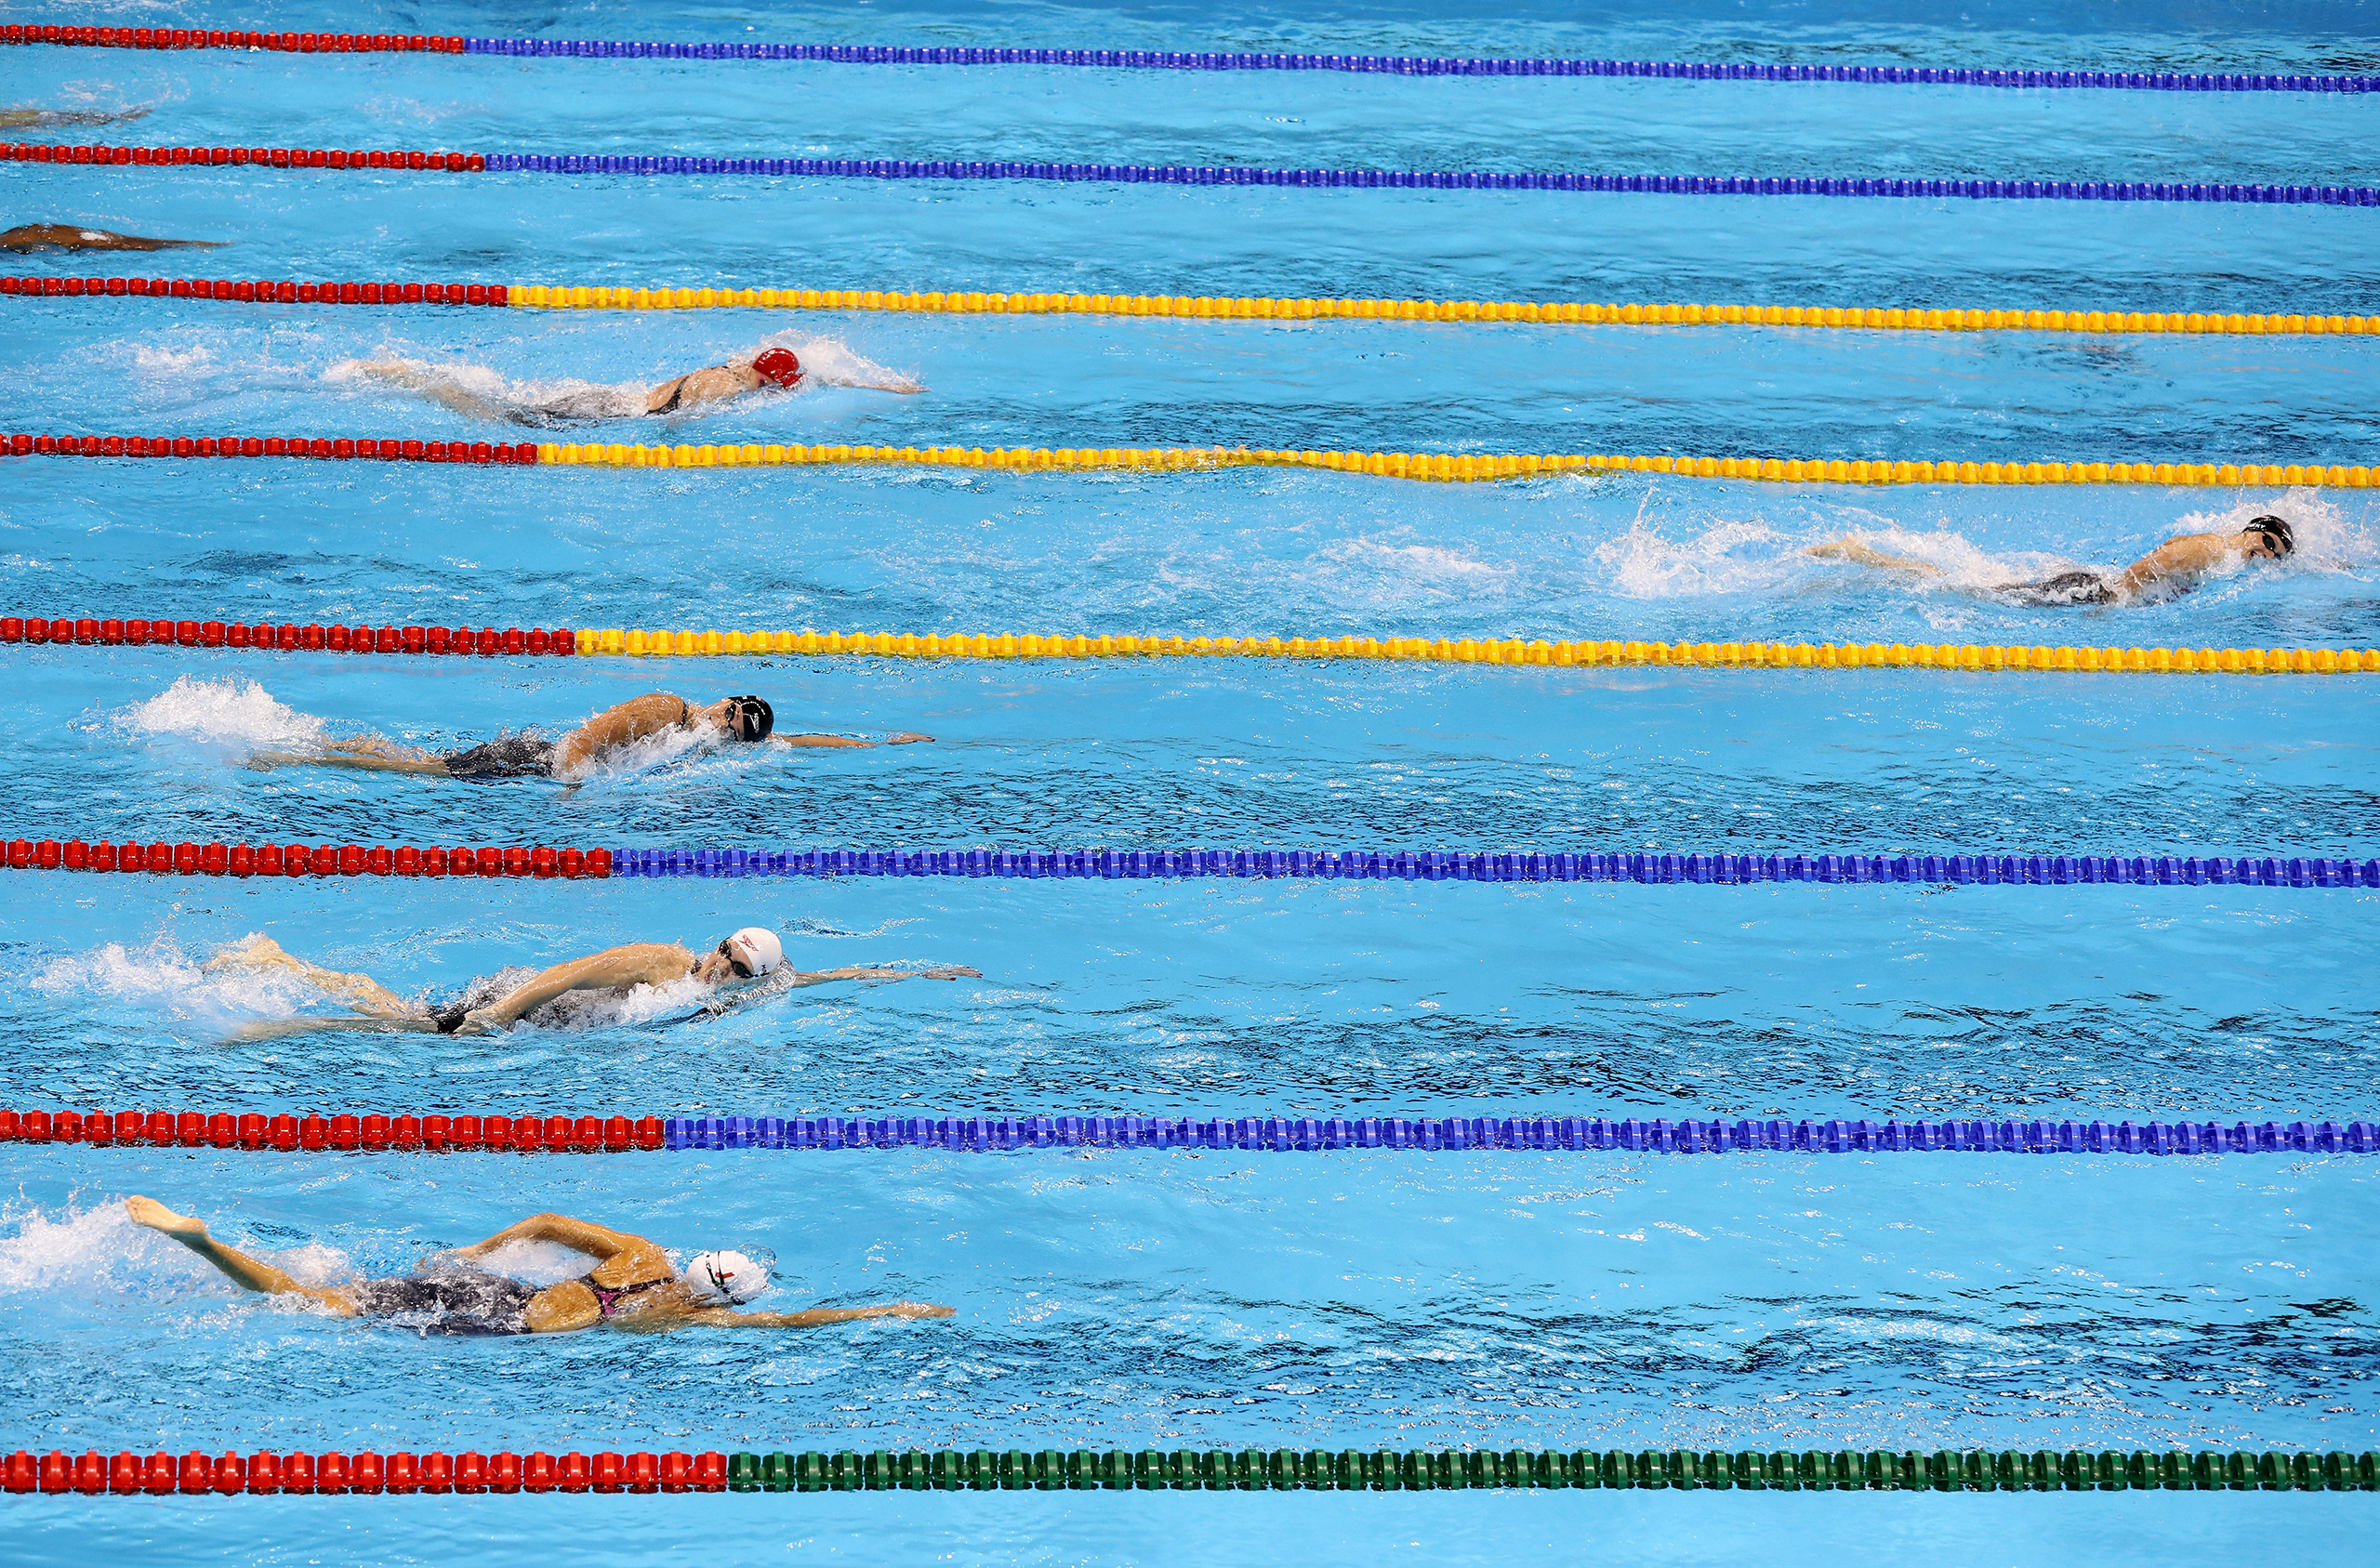 Katie Ledecky of the United States competes in the Women's 400m Freestyle Final on Day 2 of the Rio 2016 Olympic Games at the Olympic Aquatics Stadium on Aug. 7, 2016.